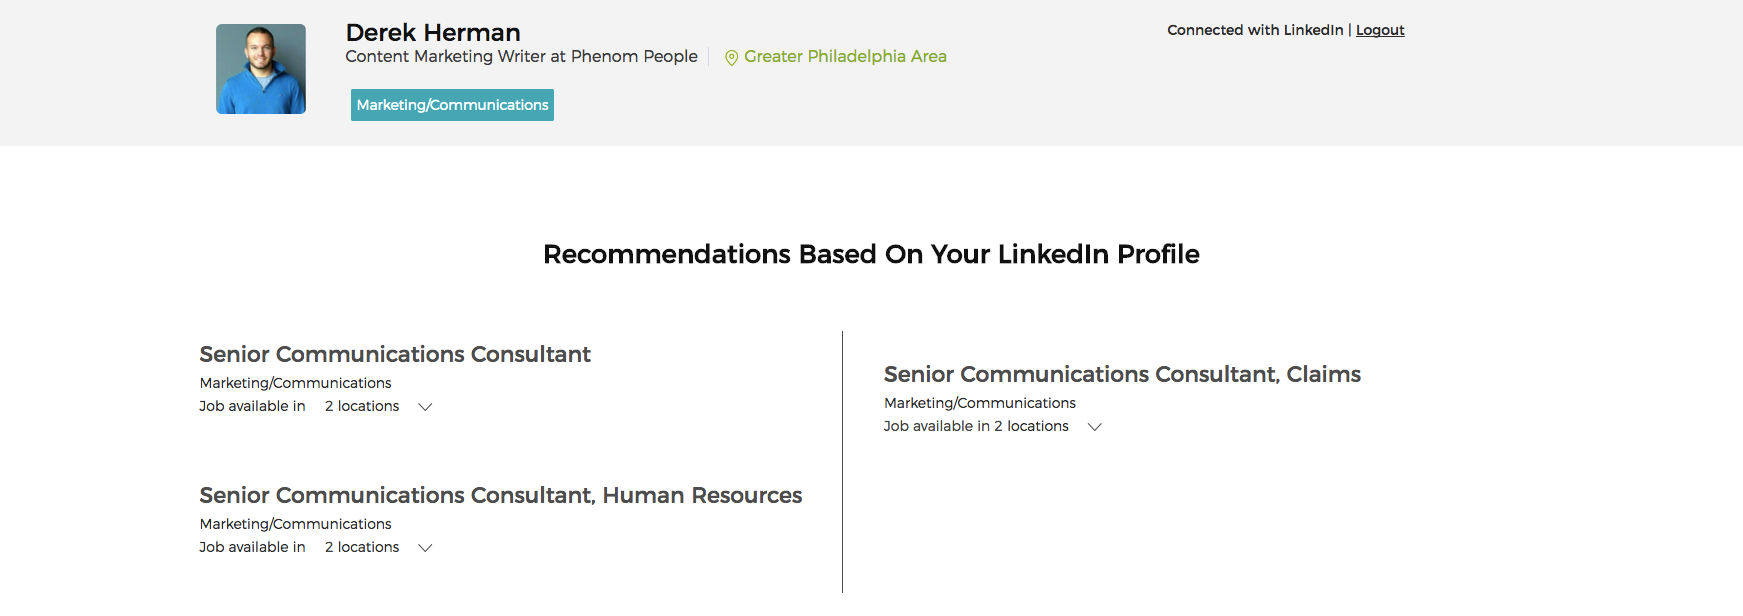 LinkedIn integration on Intact's career site